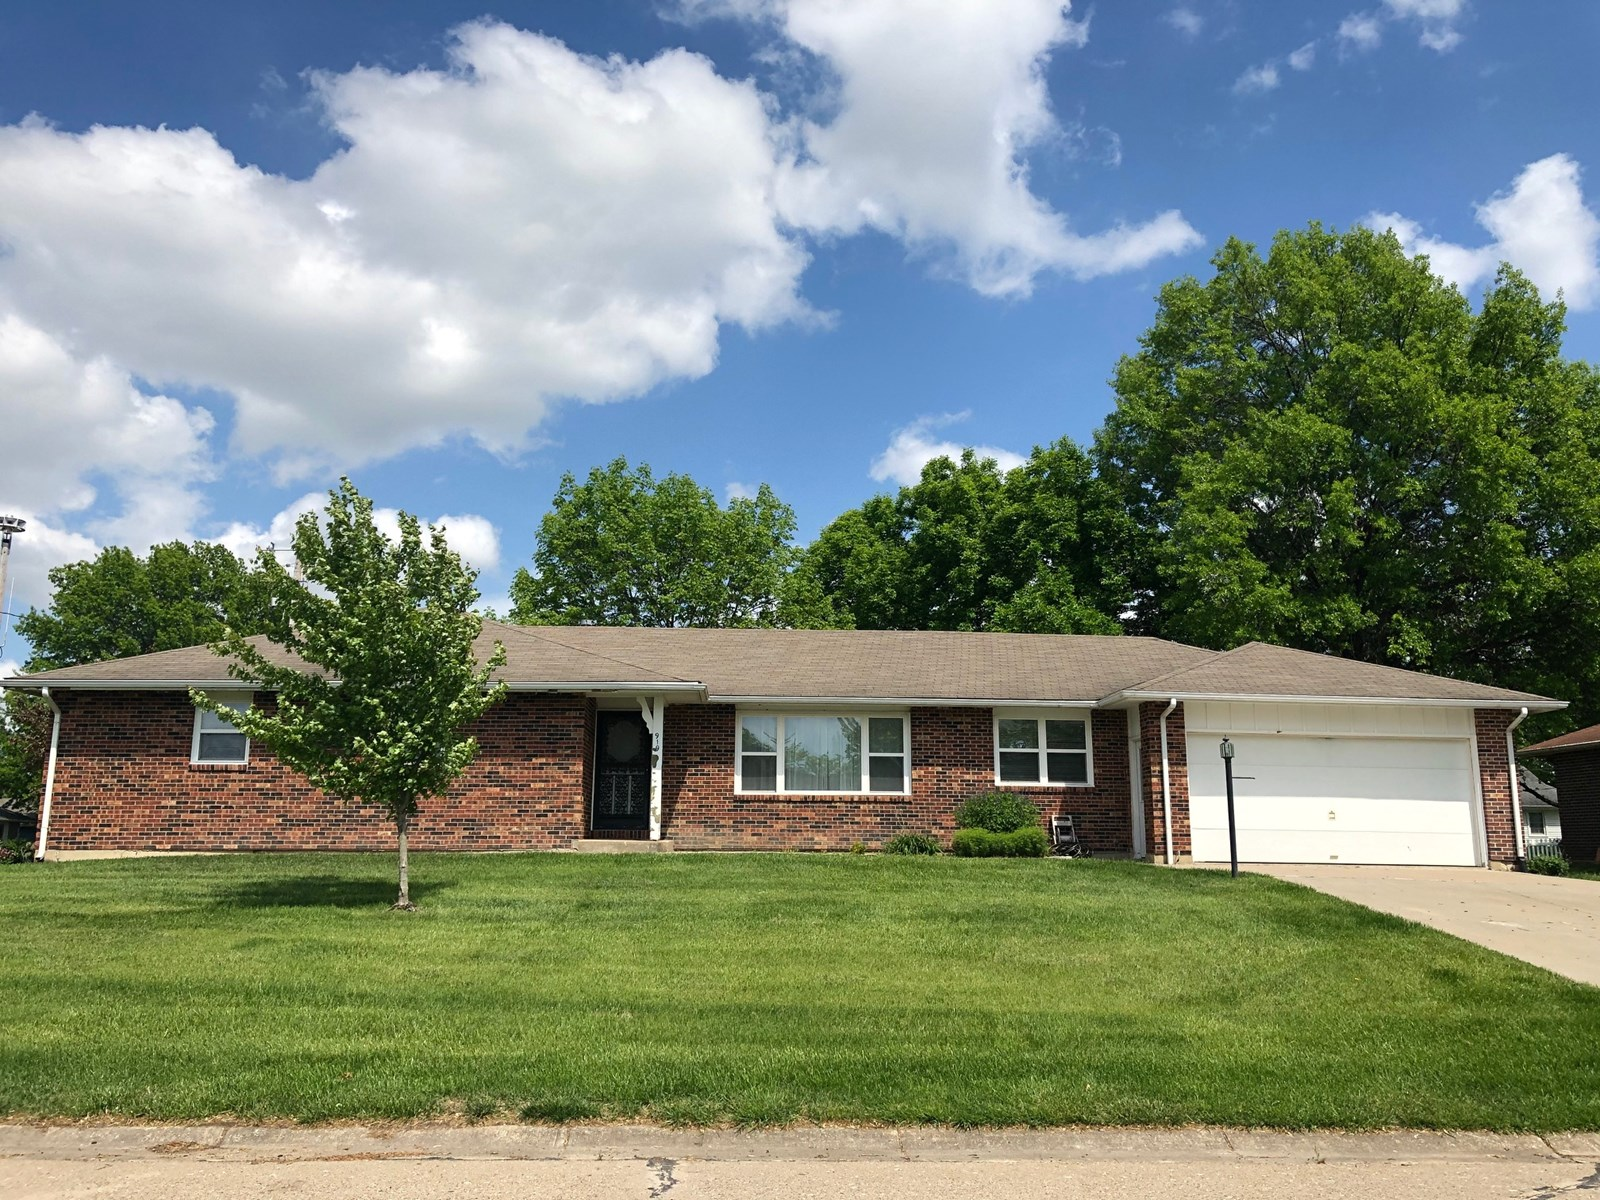 For Sale Brick Home Corner Lot Chillicothe, MO